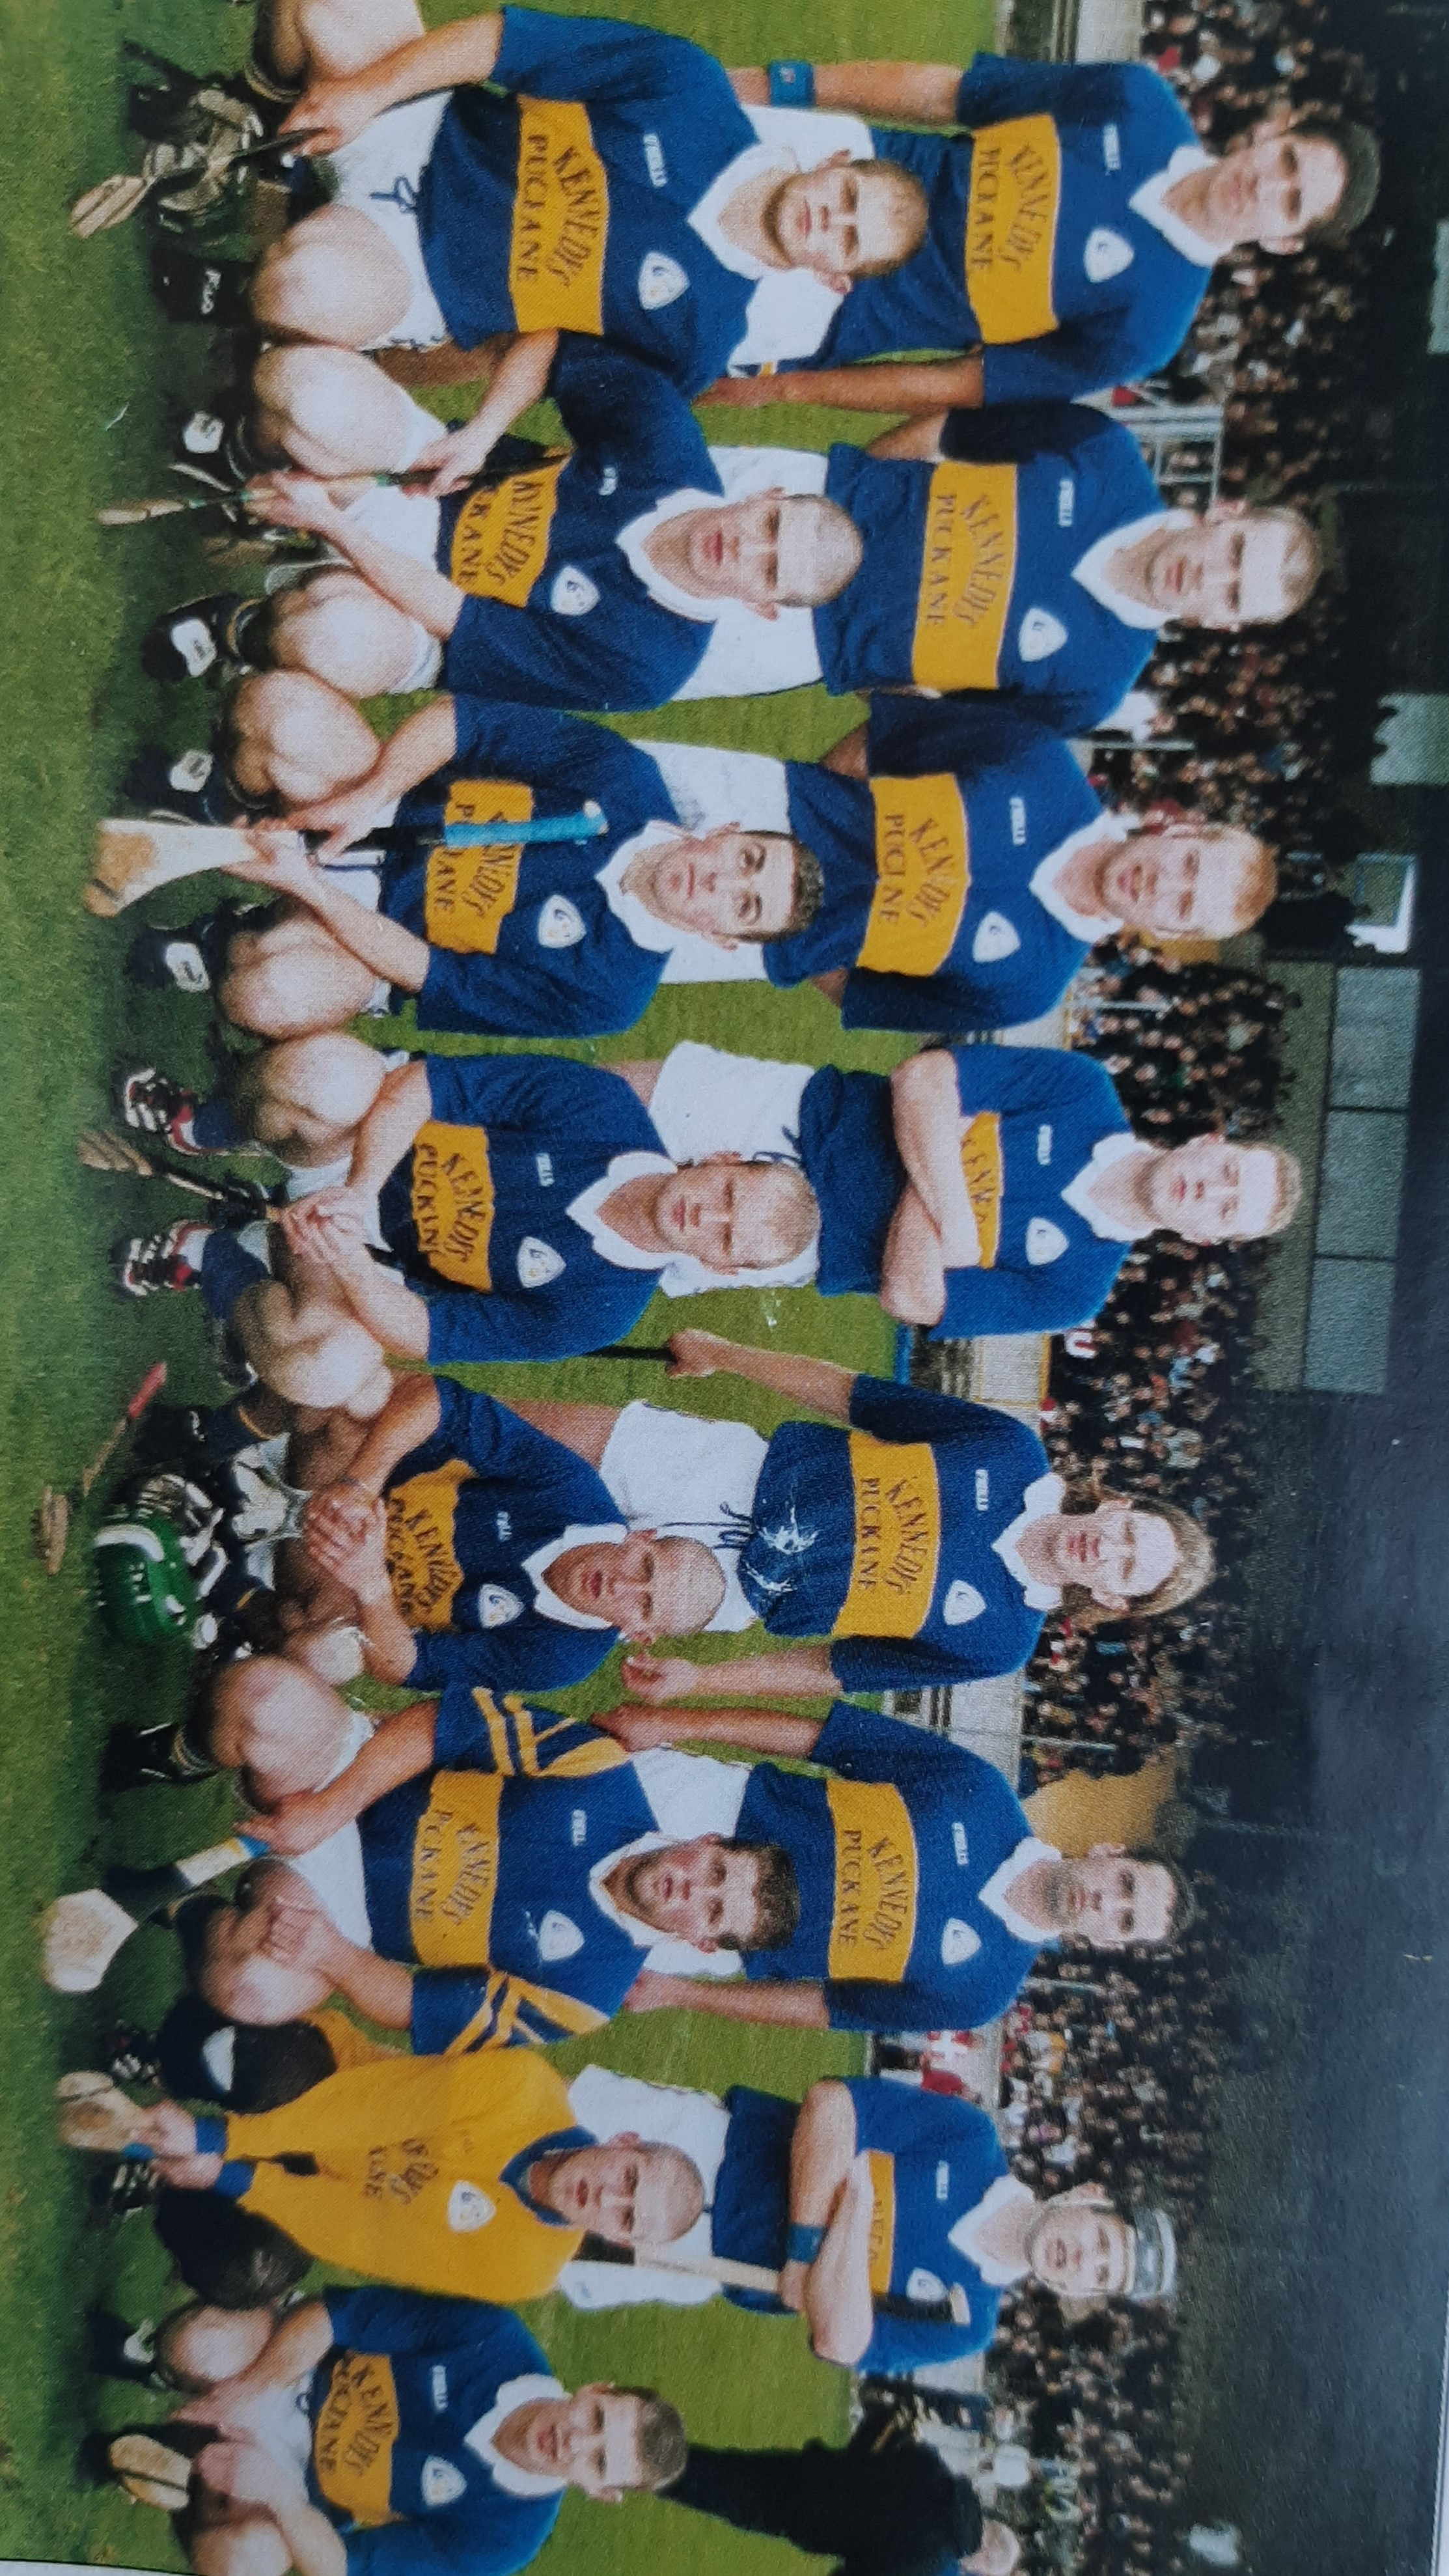 Team Picture ahead of the 2001 North Intermediate Hurling Final - Enda is pictured in the middle of the back row